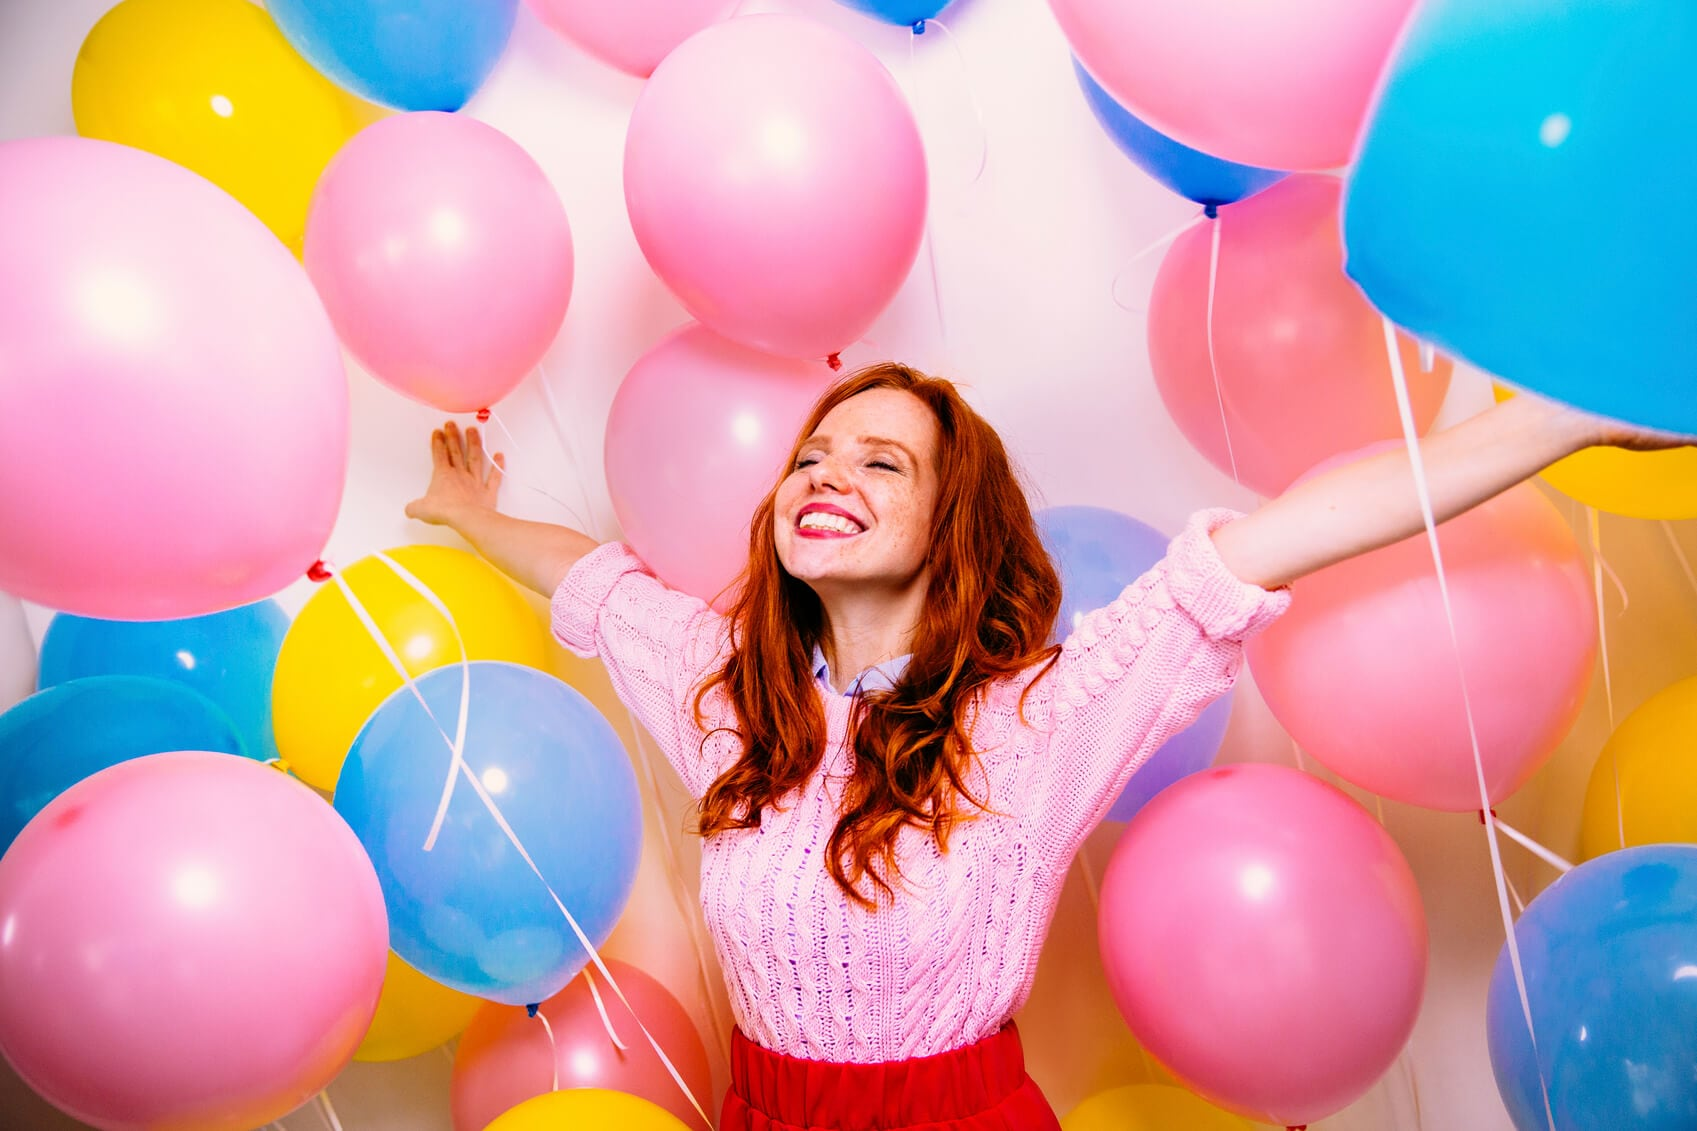 red hair day balloons